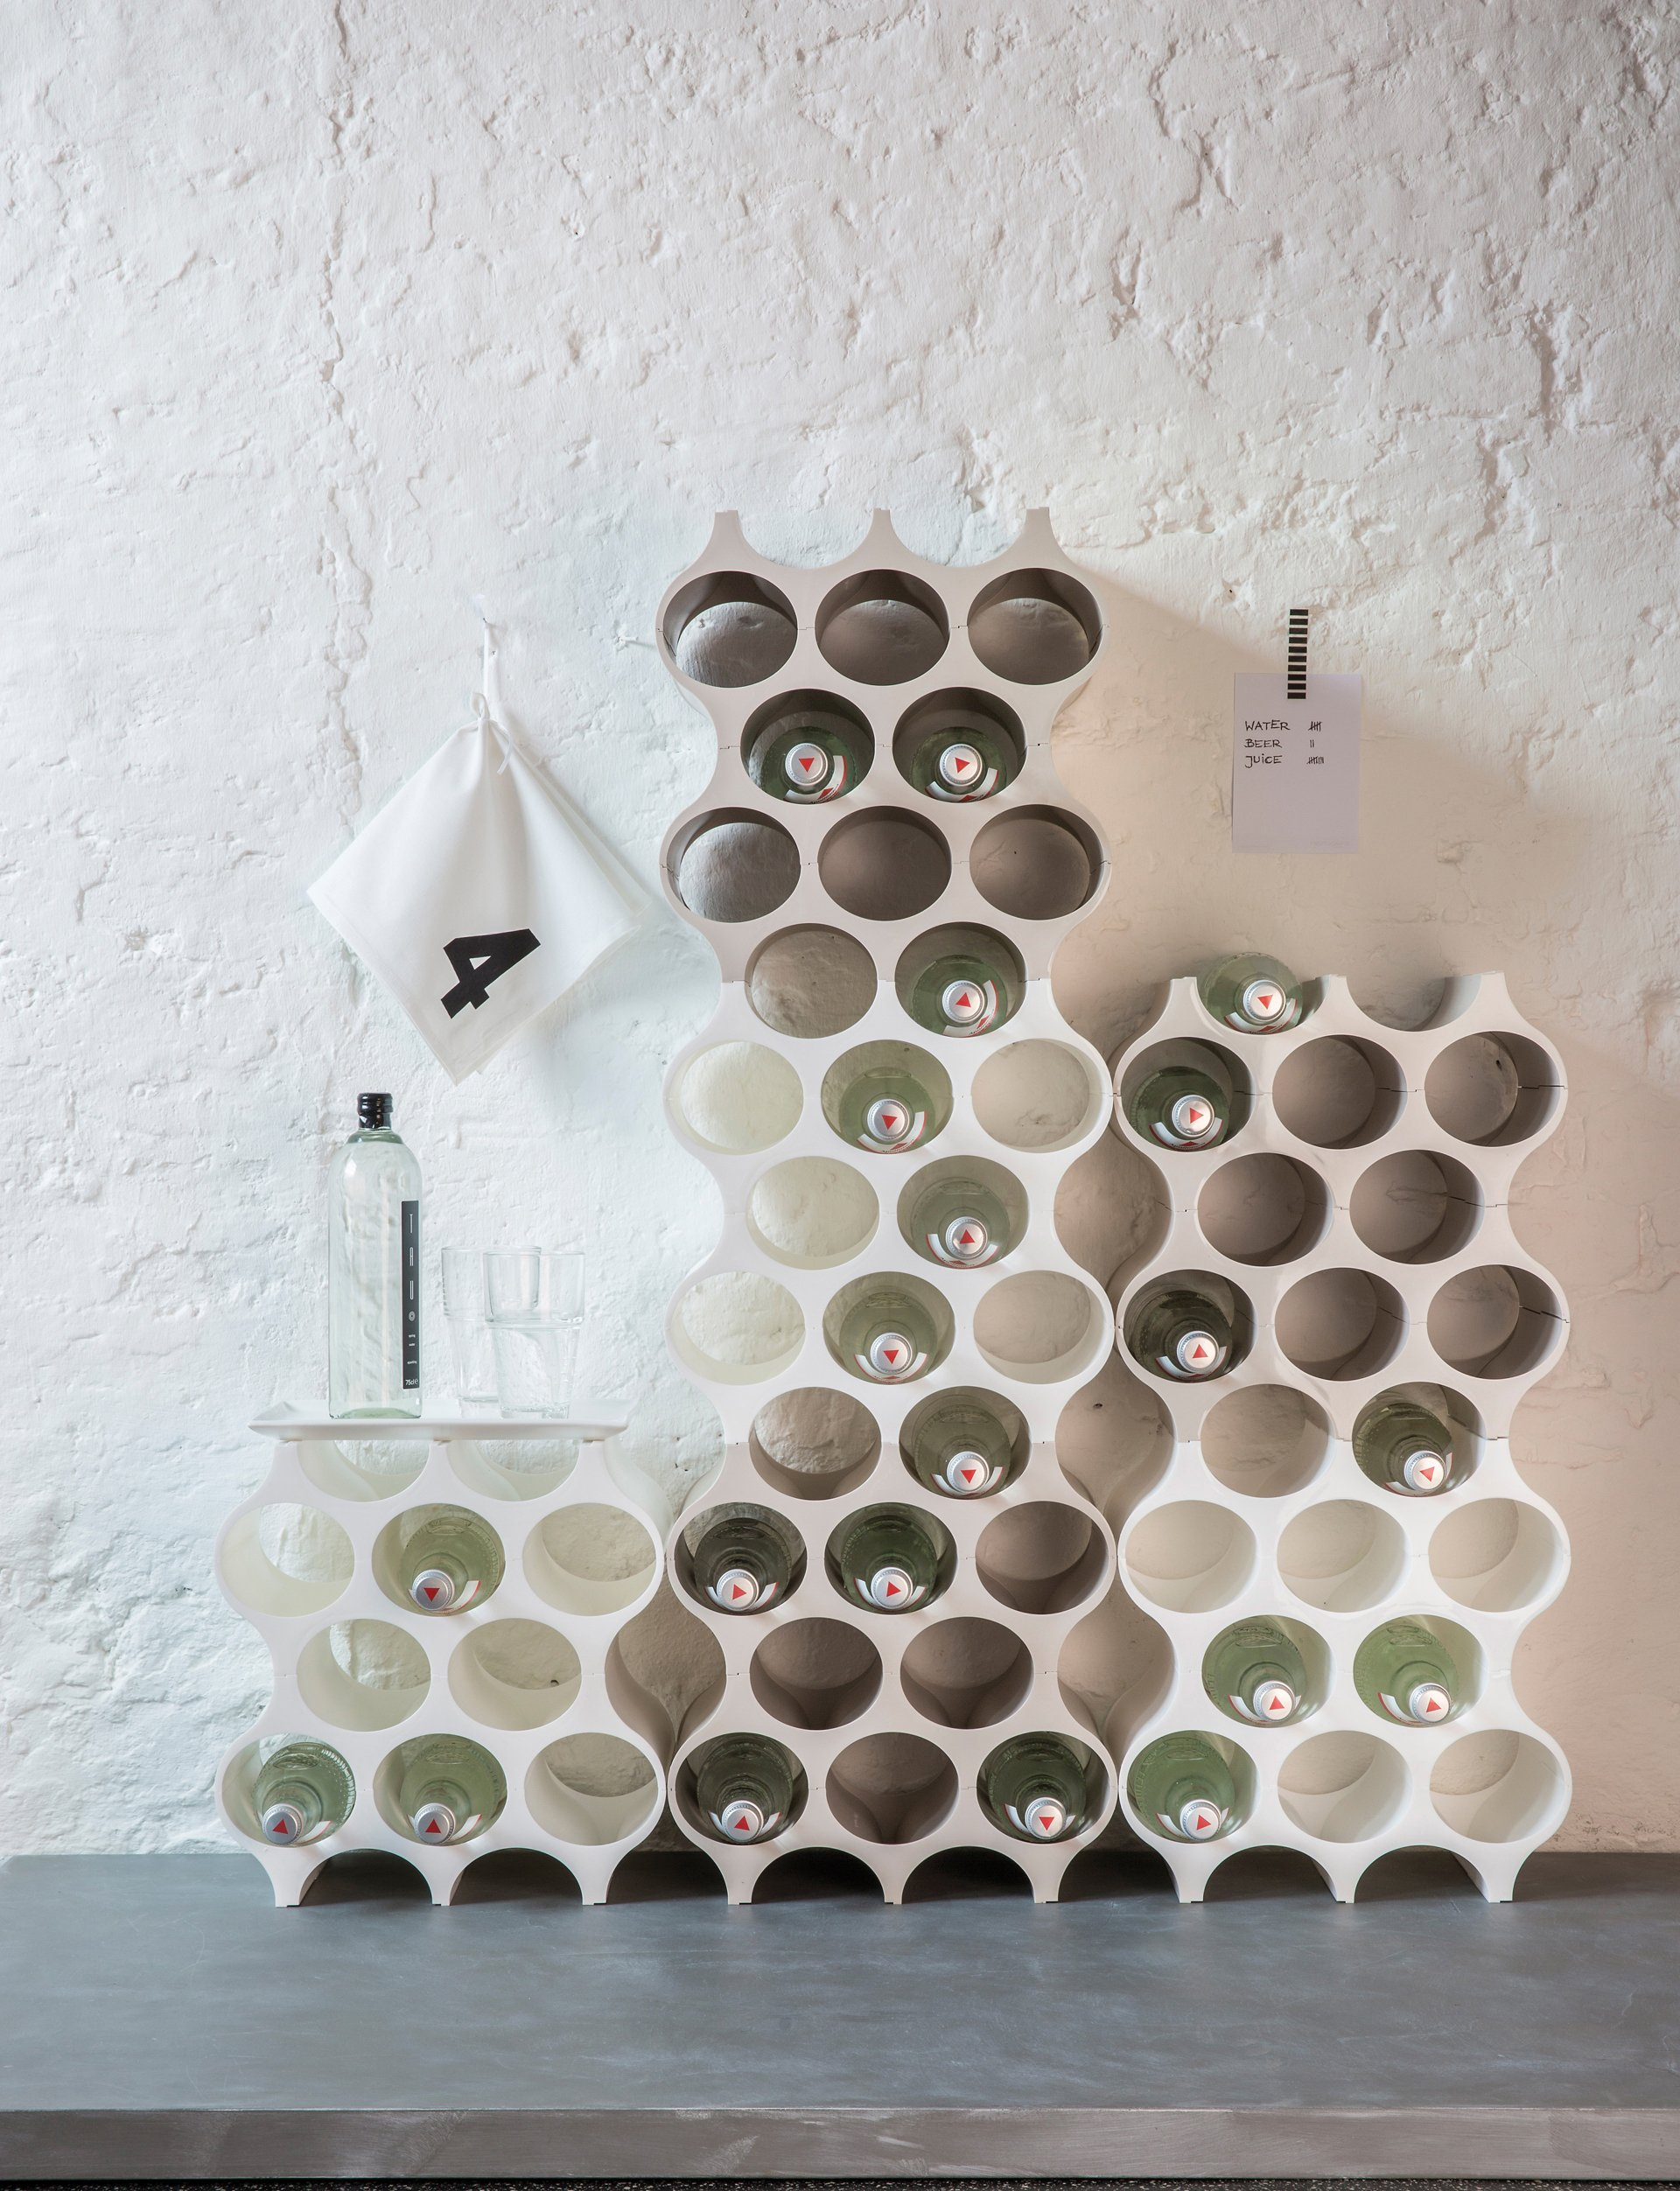 Koziol SET-UP Bottle Rack, Cosmos Black by Koziol (Image #4)